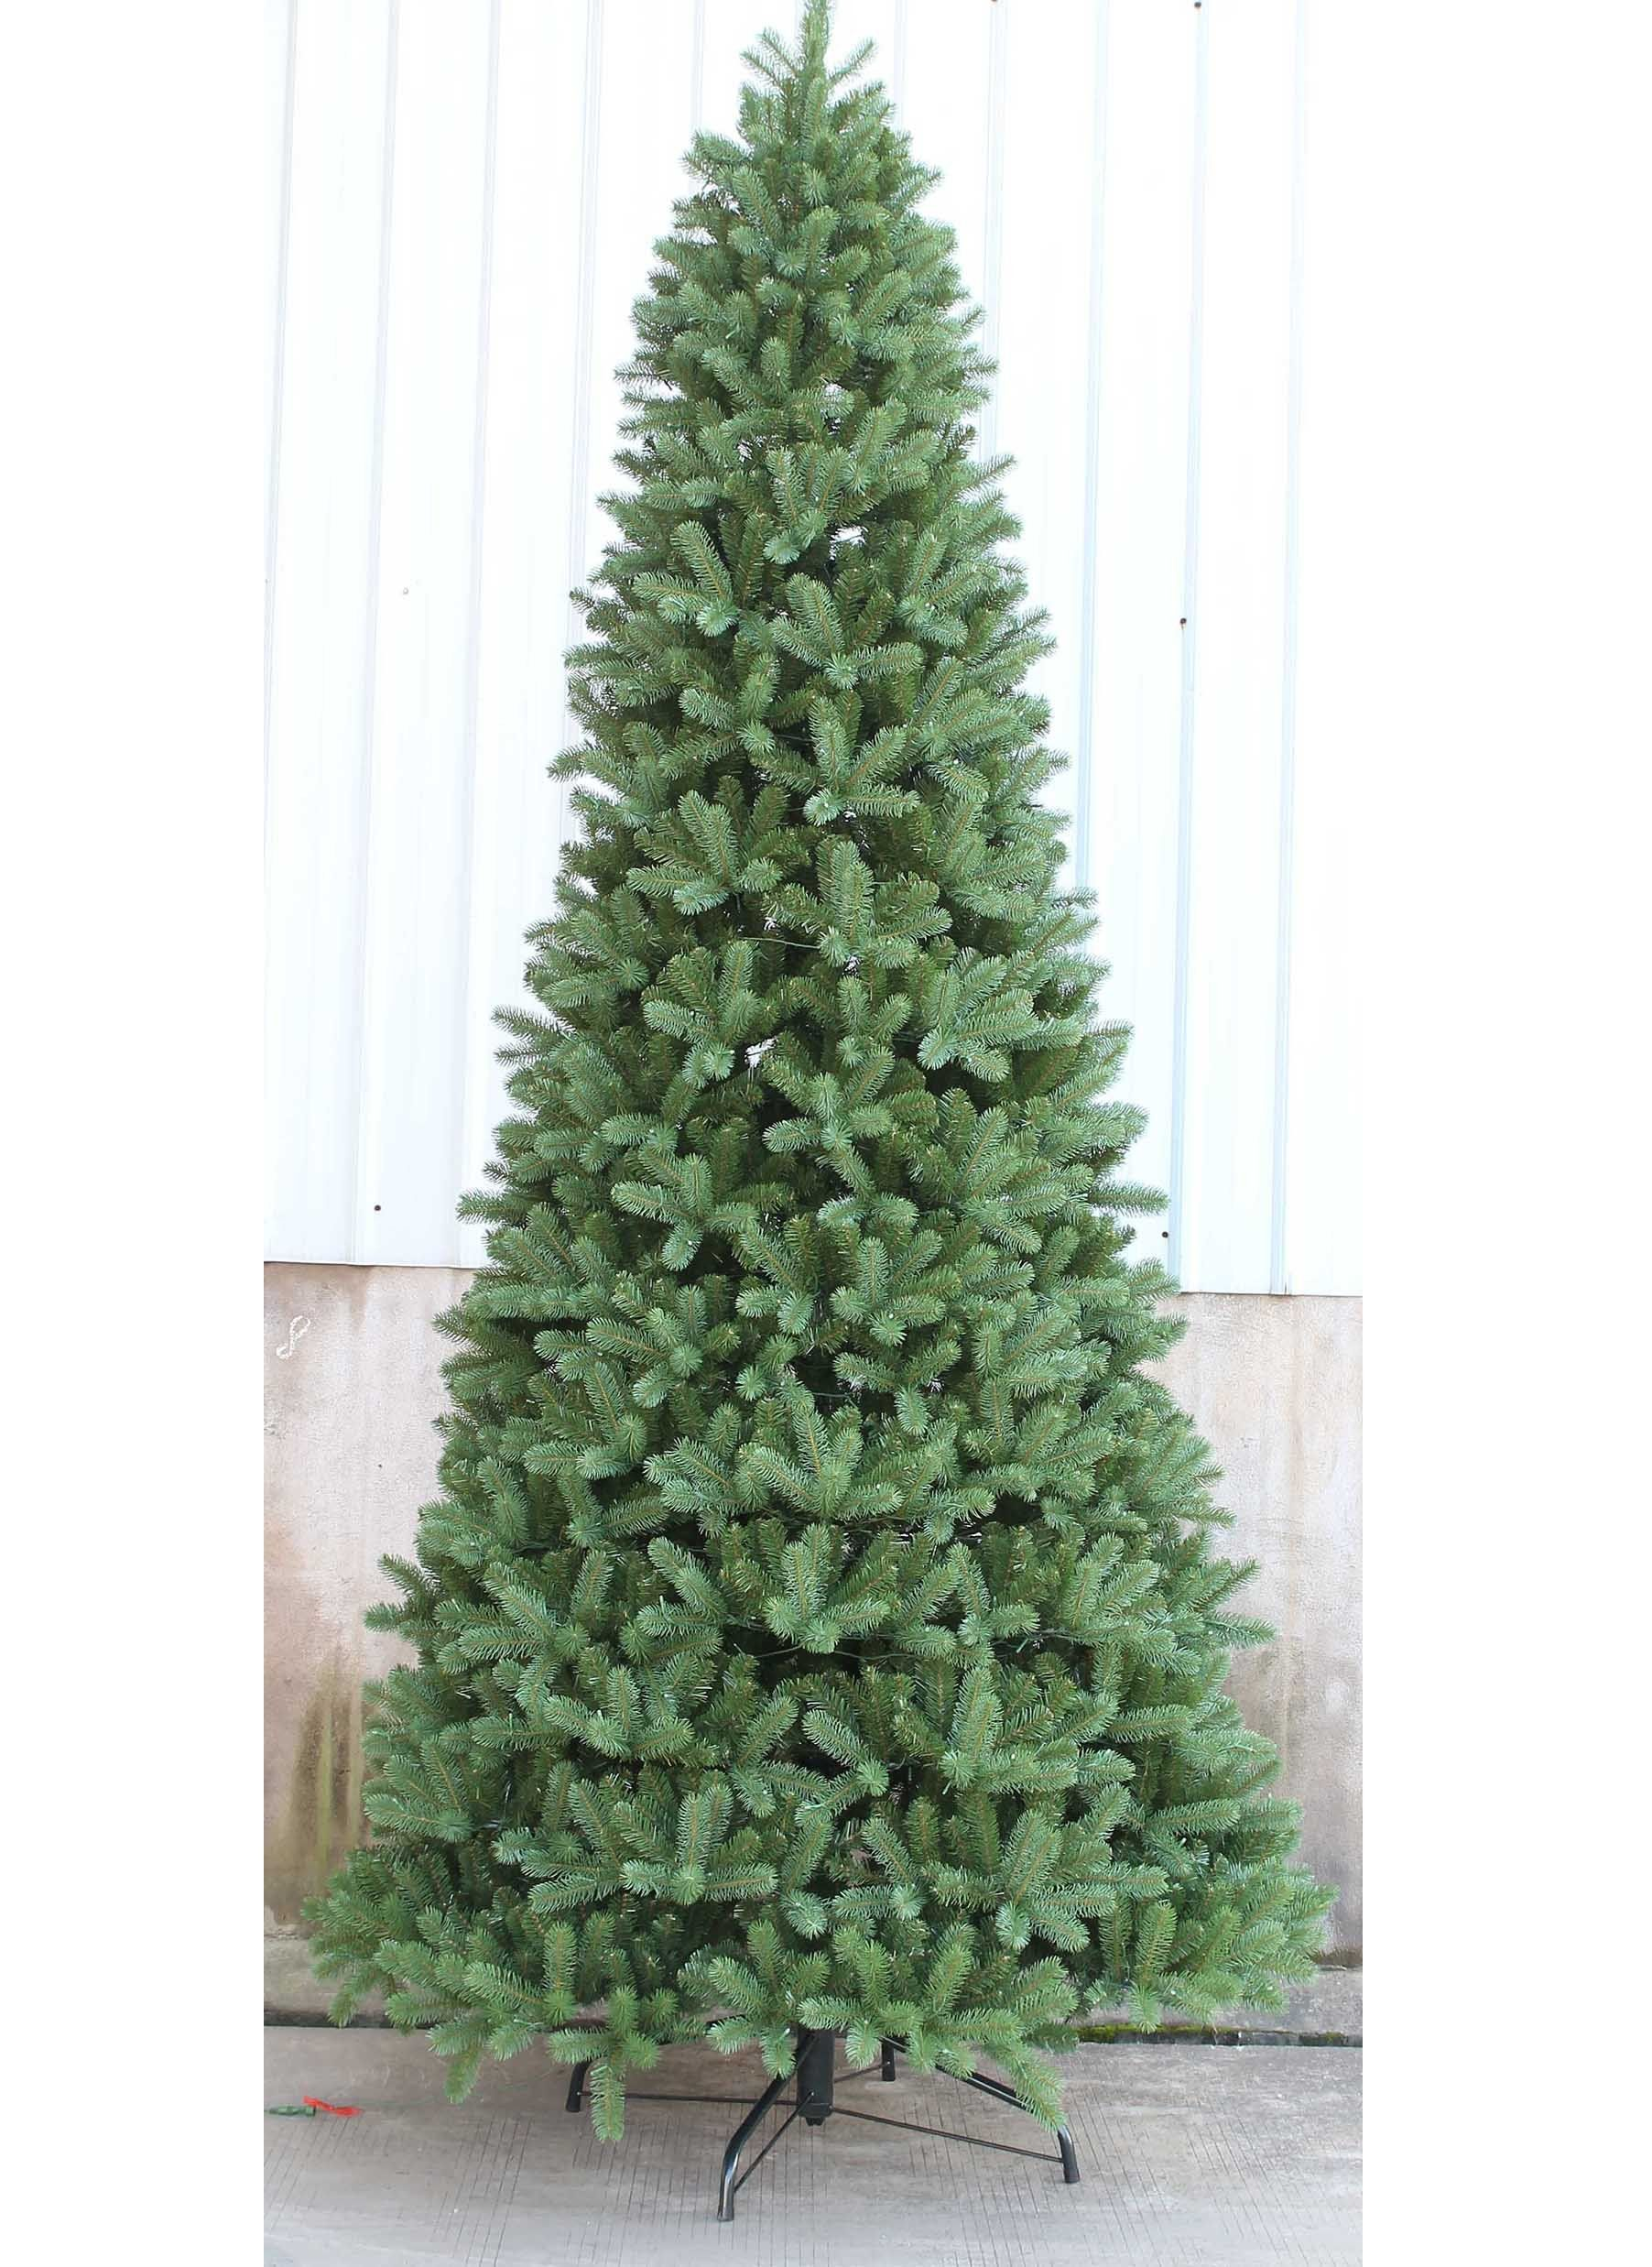 C30 12 Ft Pre Lit Walker Spruce Christmas Tree With 1350 Clear Lights Fir Christmas Tree Artificial Christmas Tree Slim Artificial Christmas Trees